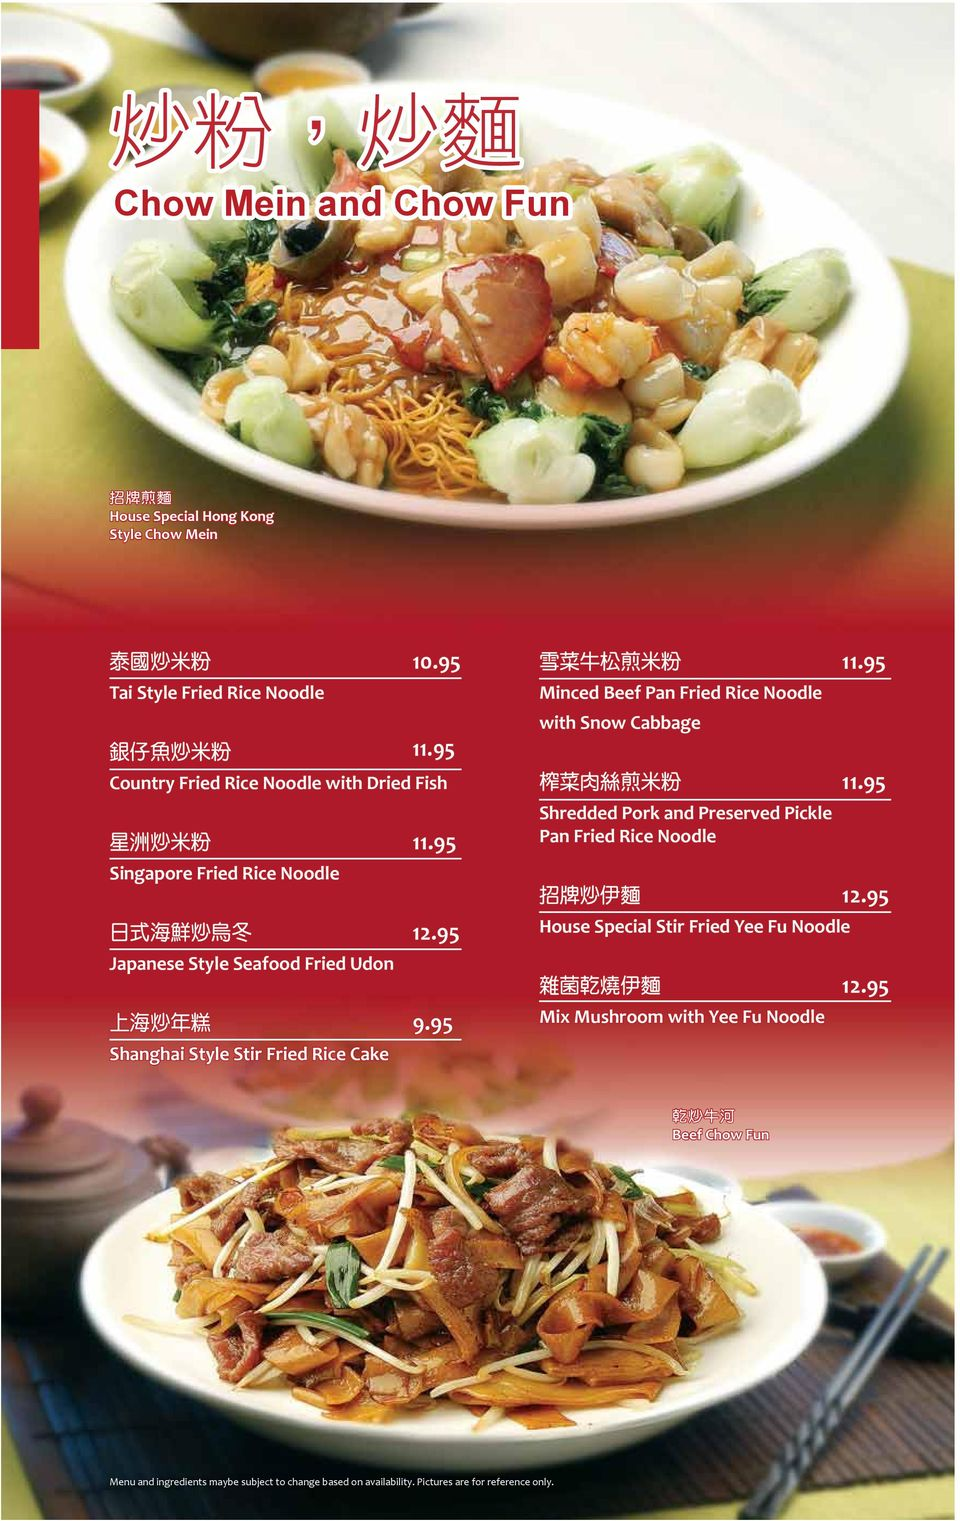 95 Shanghai Style Stir Fried Rice Cake 11.95 Minced Beef Pan Fried Rice Noodle with Snow Cabbage 11.